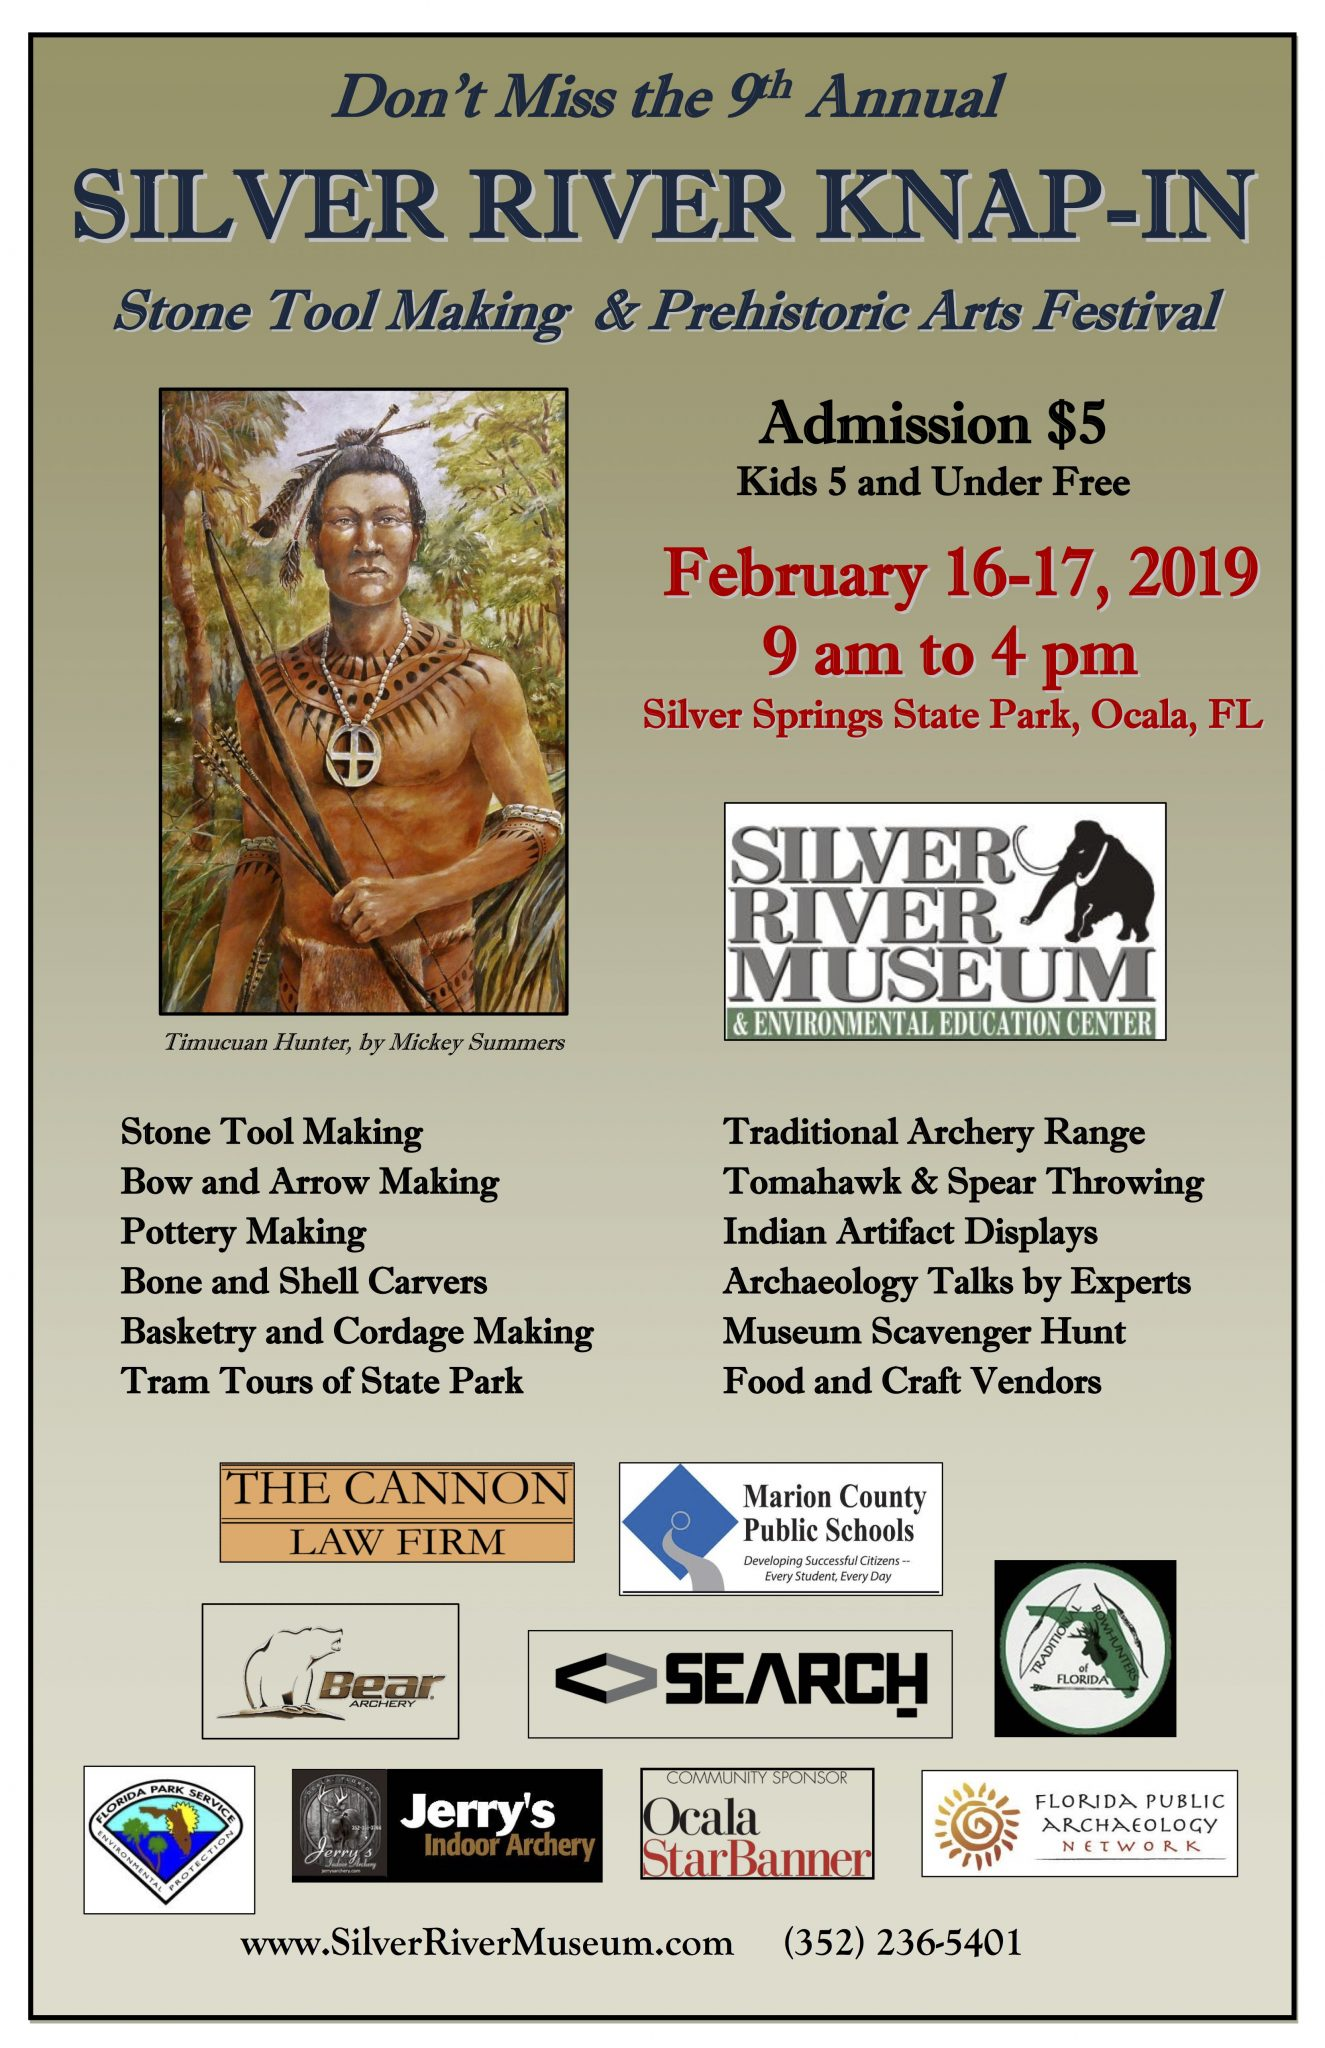 Poster for Silver River Knap-in